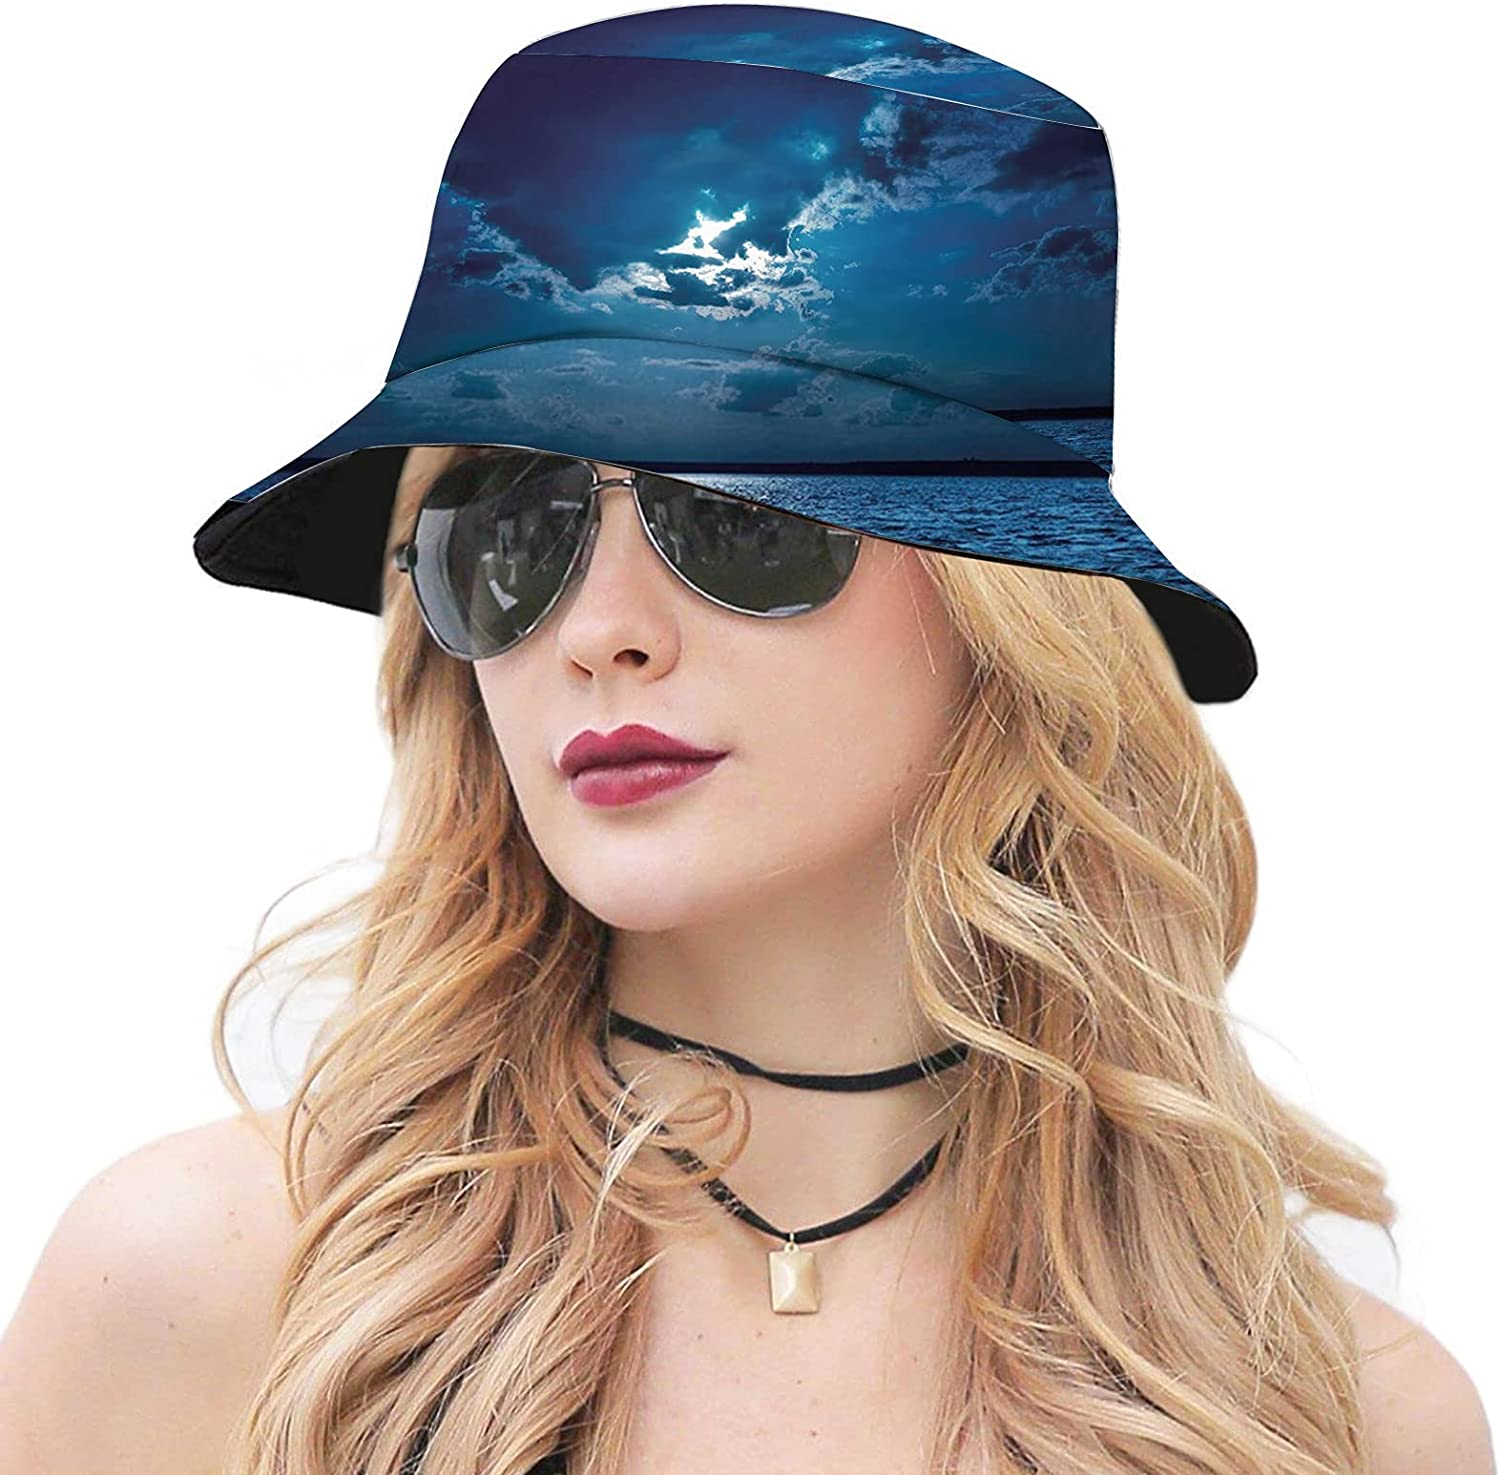 Multicolor Packable Fisherman Bucket Sun Ranking integrated 1st place Hat Brim Wome New item Wide Hats